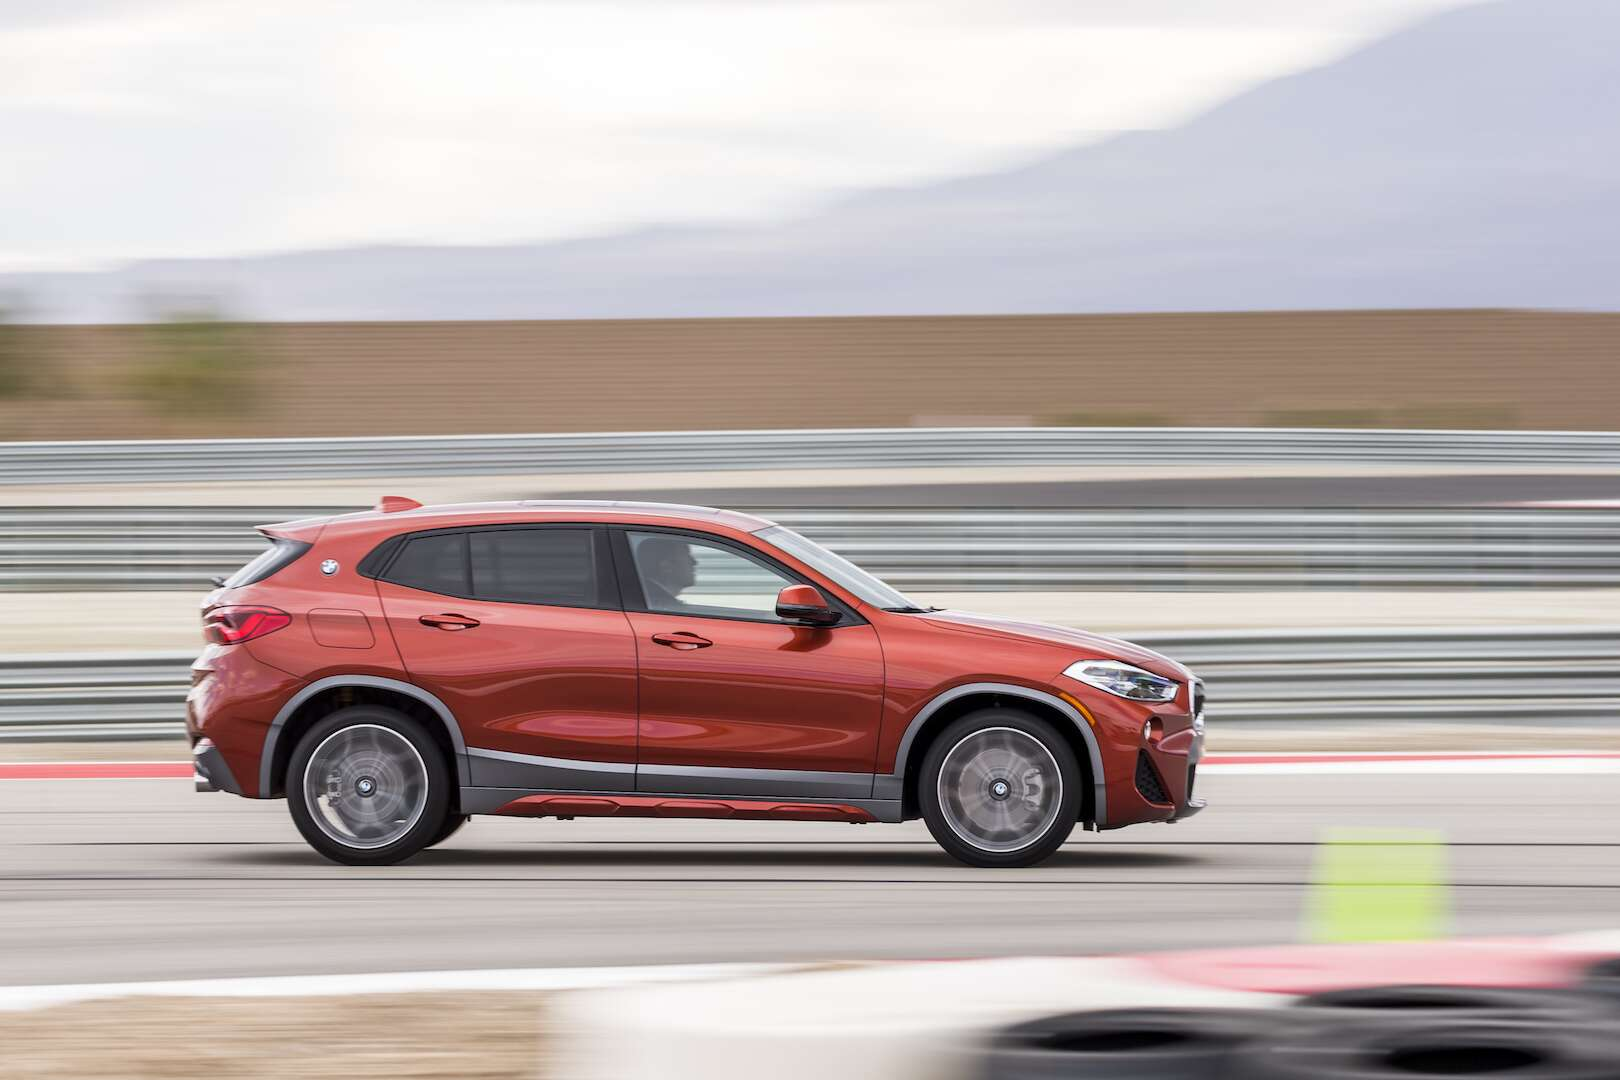 packs luxury big videos in compact crossover s bmw package roadshow a video small bmws